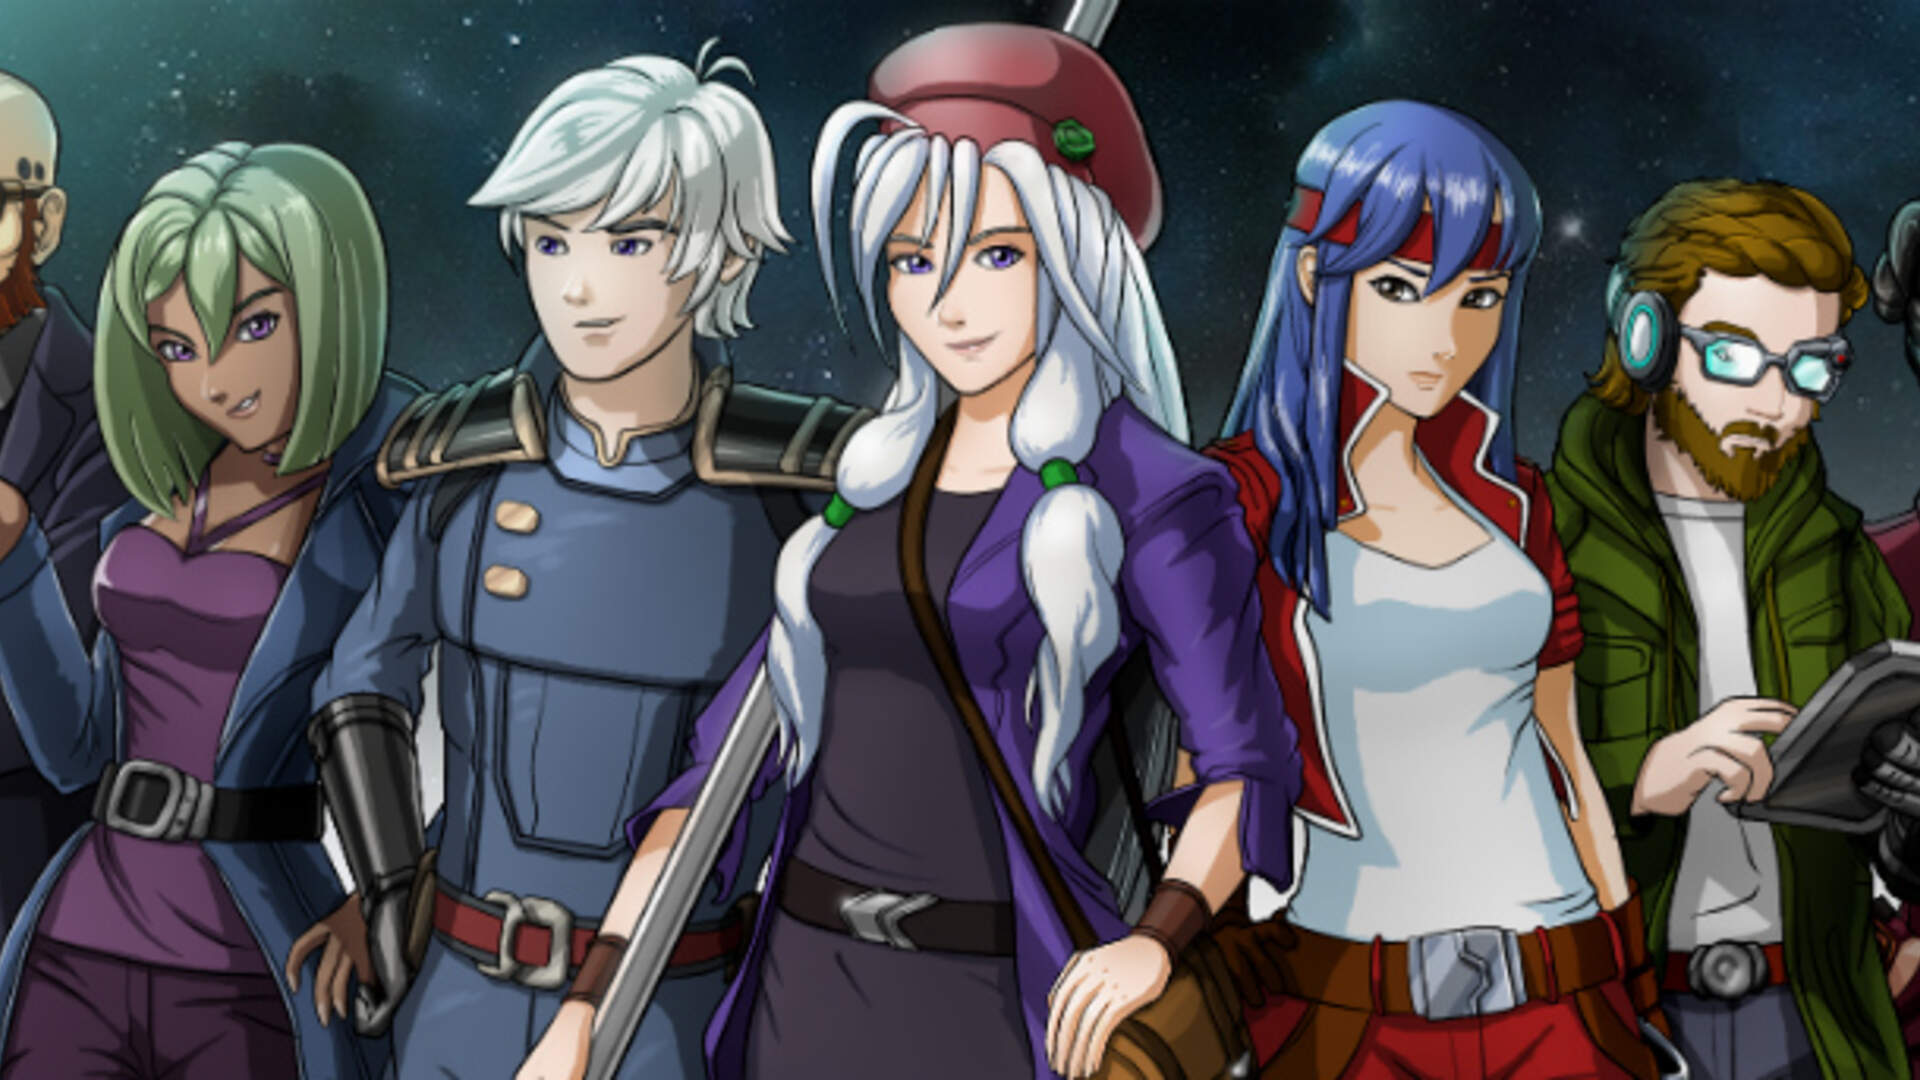 Cosmic Star Heroine Coming April 11 to PC and PS4